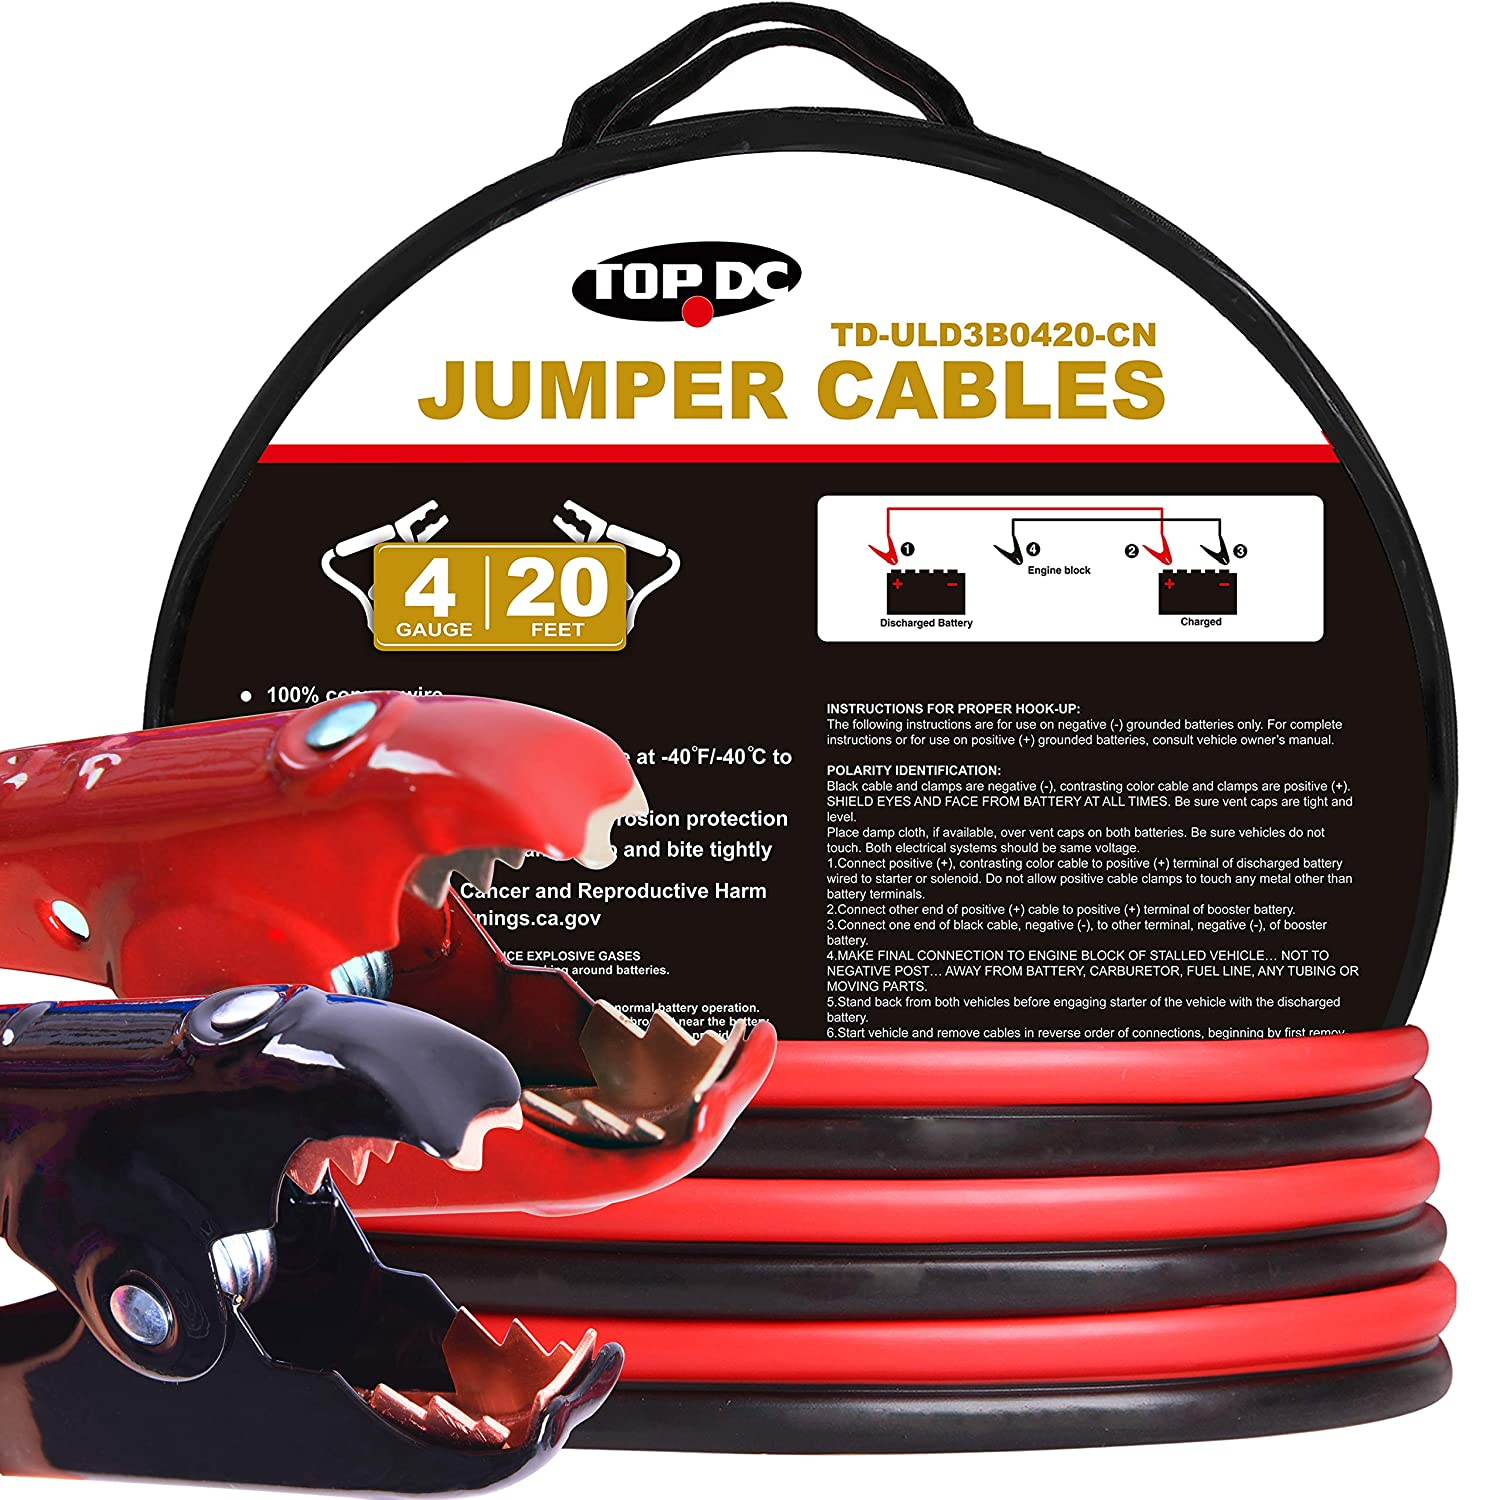 TOPDC 100% Copper Jumper Cables 4 Gauge 16 Feet 380AMP Heavy Duty Booster Cables with Carry Bag and Safety Gloves (4AWG x 16Ft) TD-UL010416